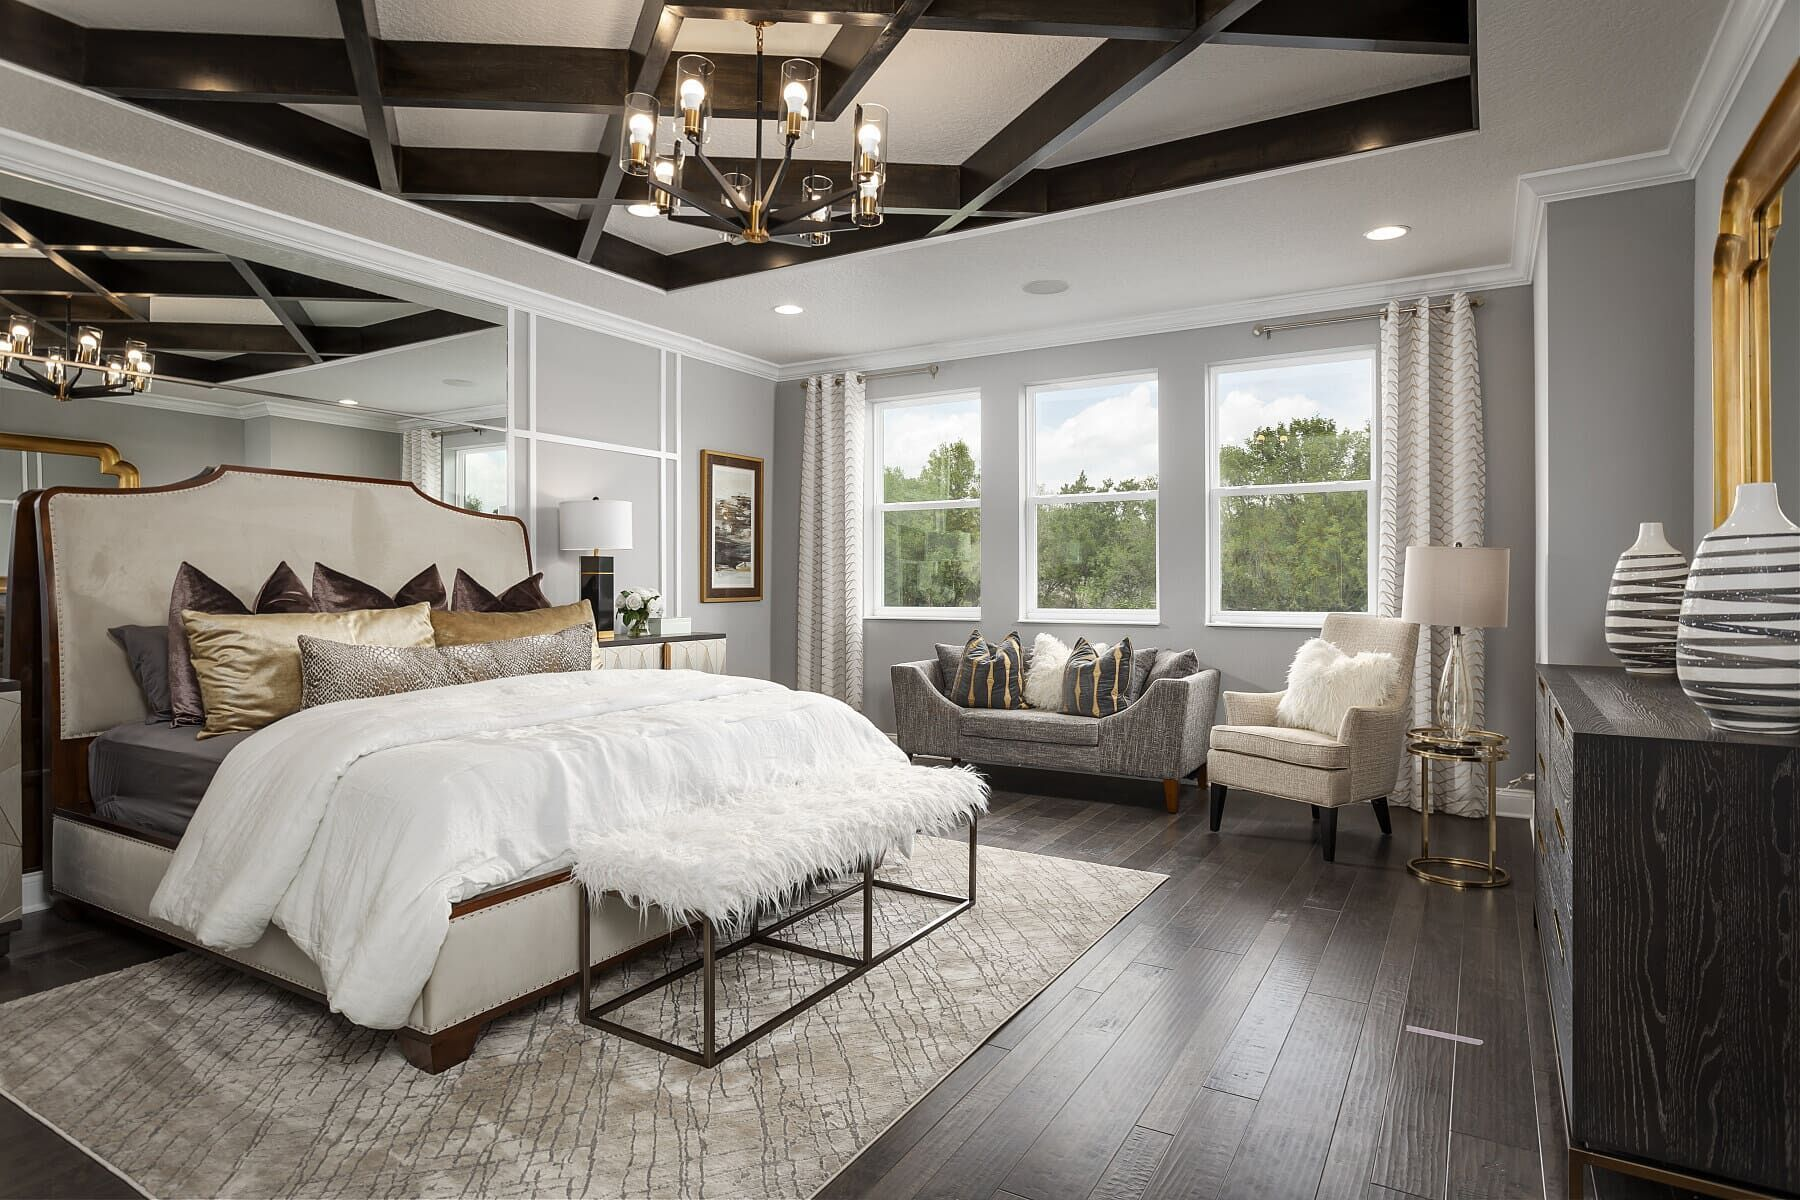 Bedroom featured in the Halifax By M/I Homes in Orlando, FL